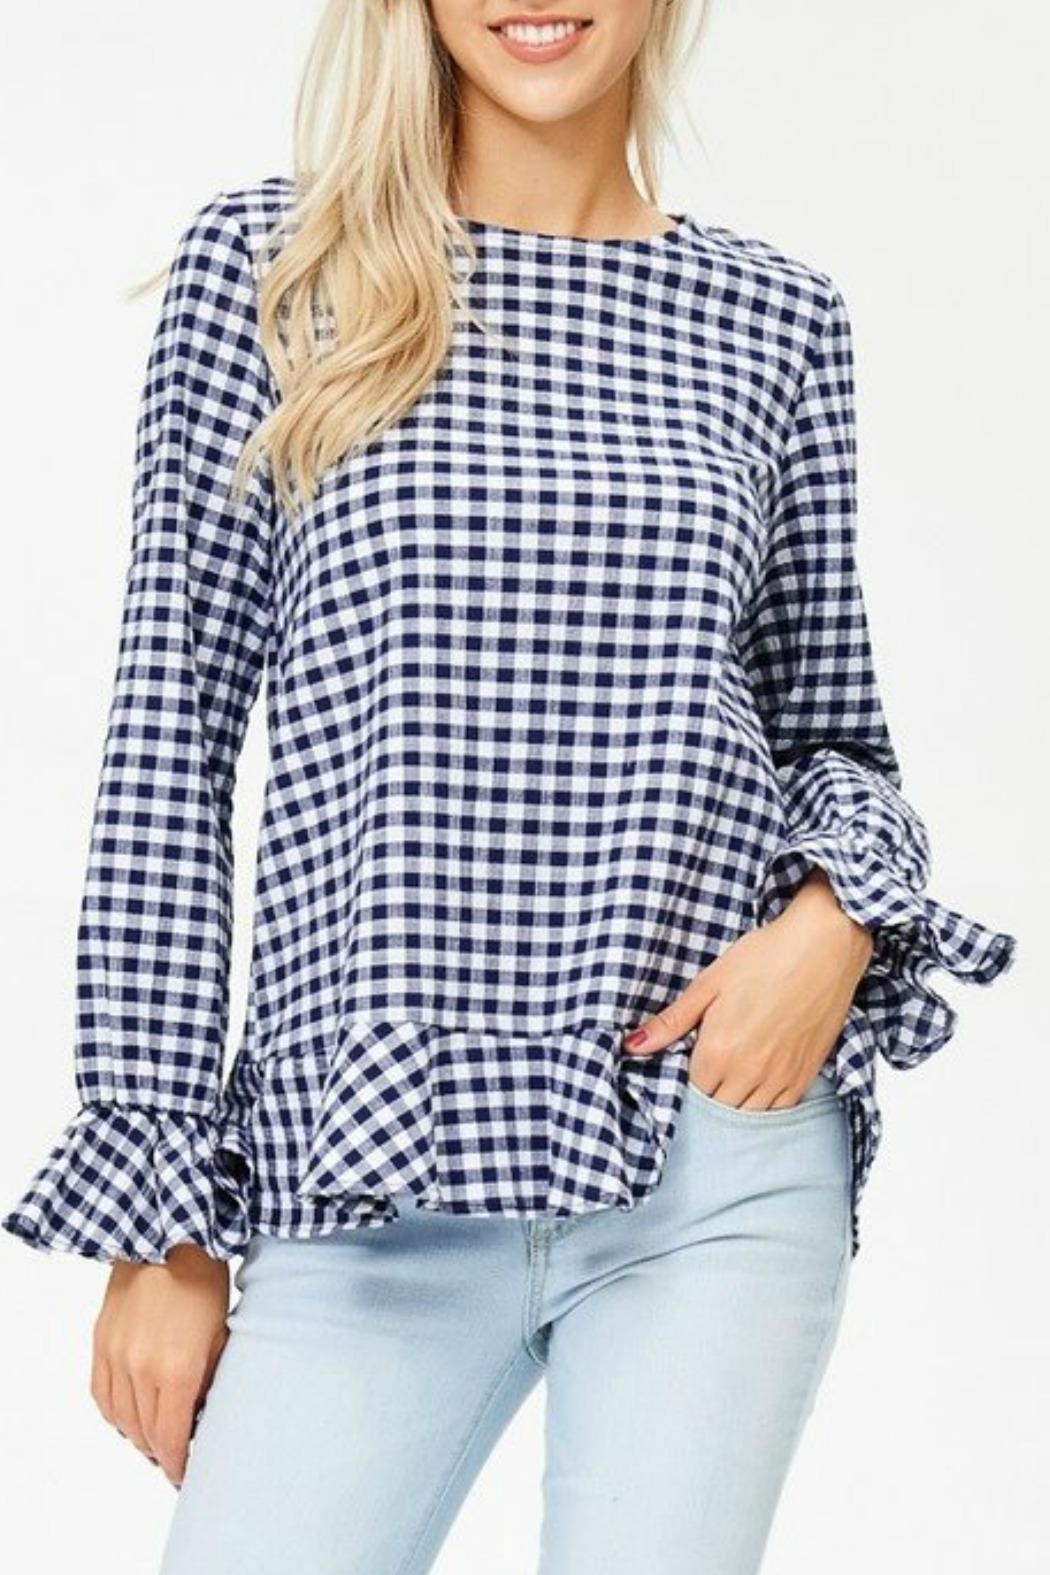 White Birch Haley Gingham Top - Main Image